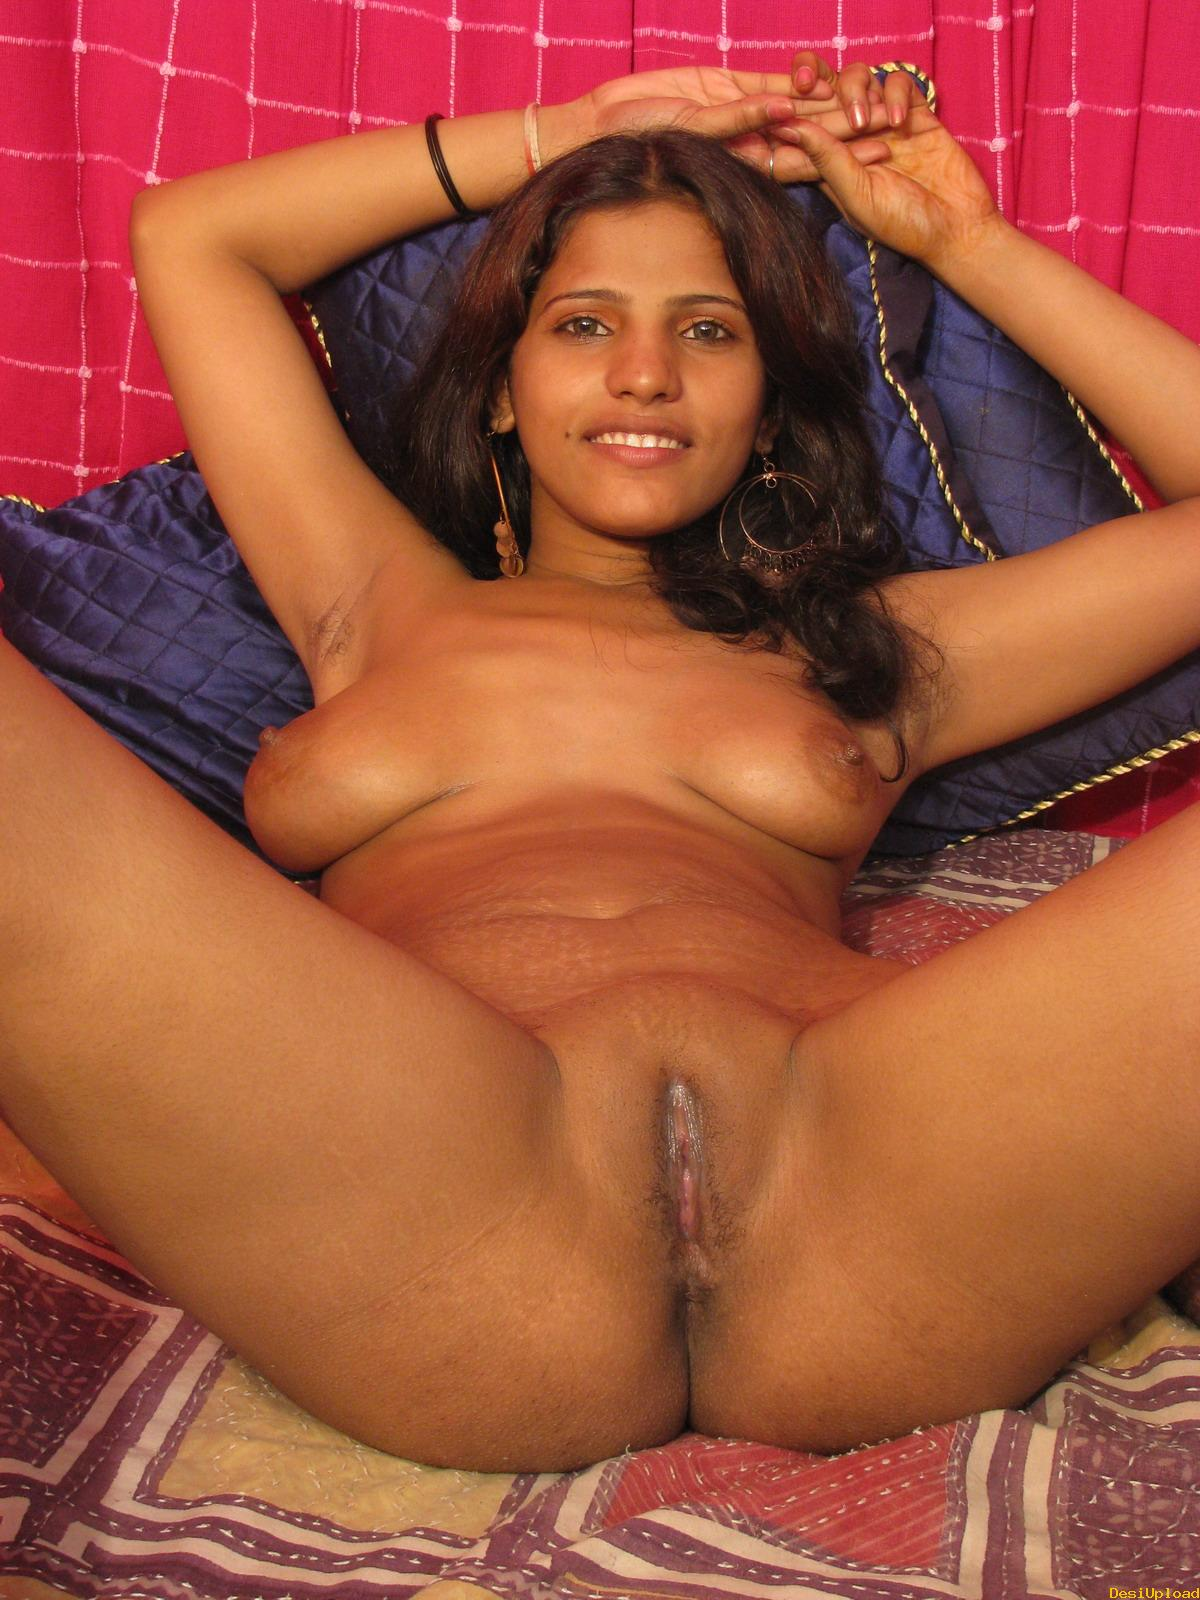 Nude indian babes hd consider